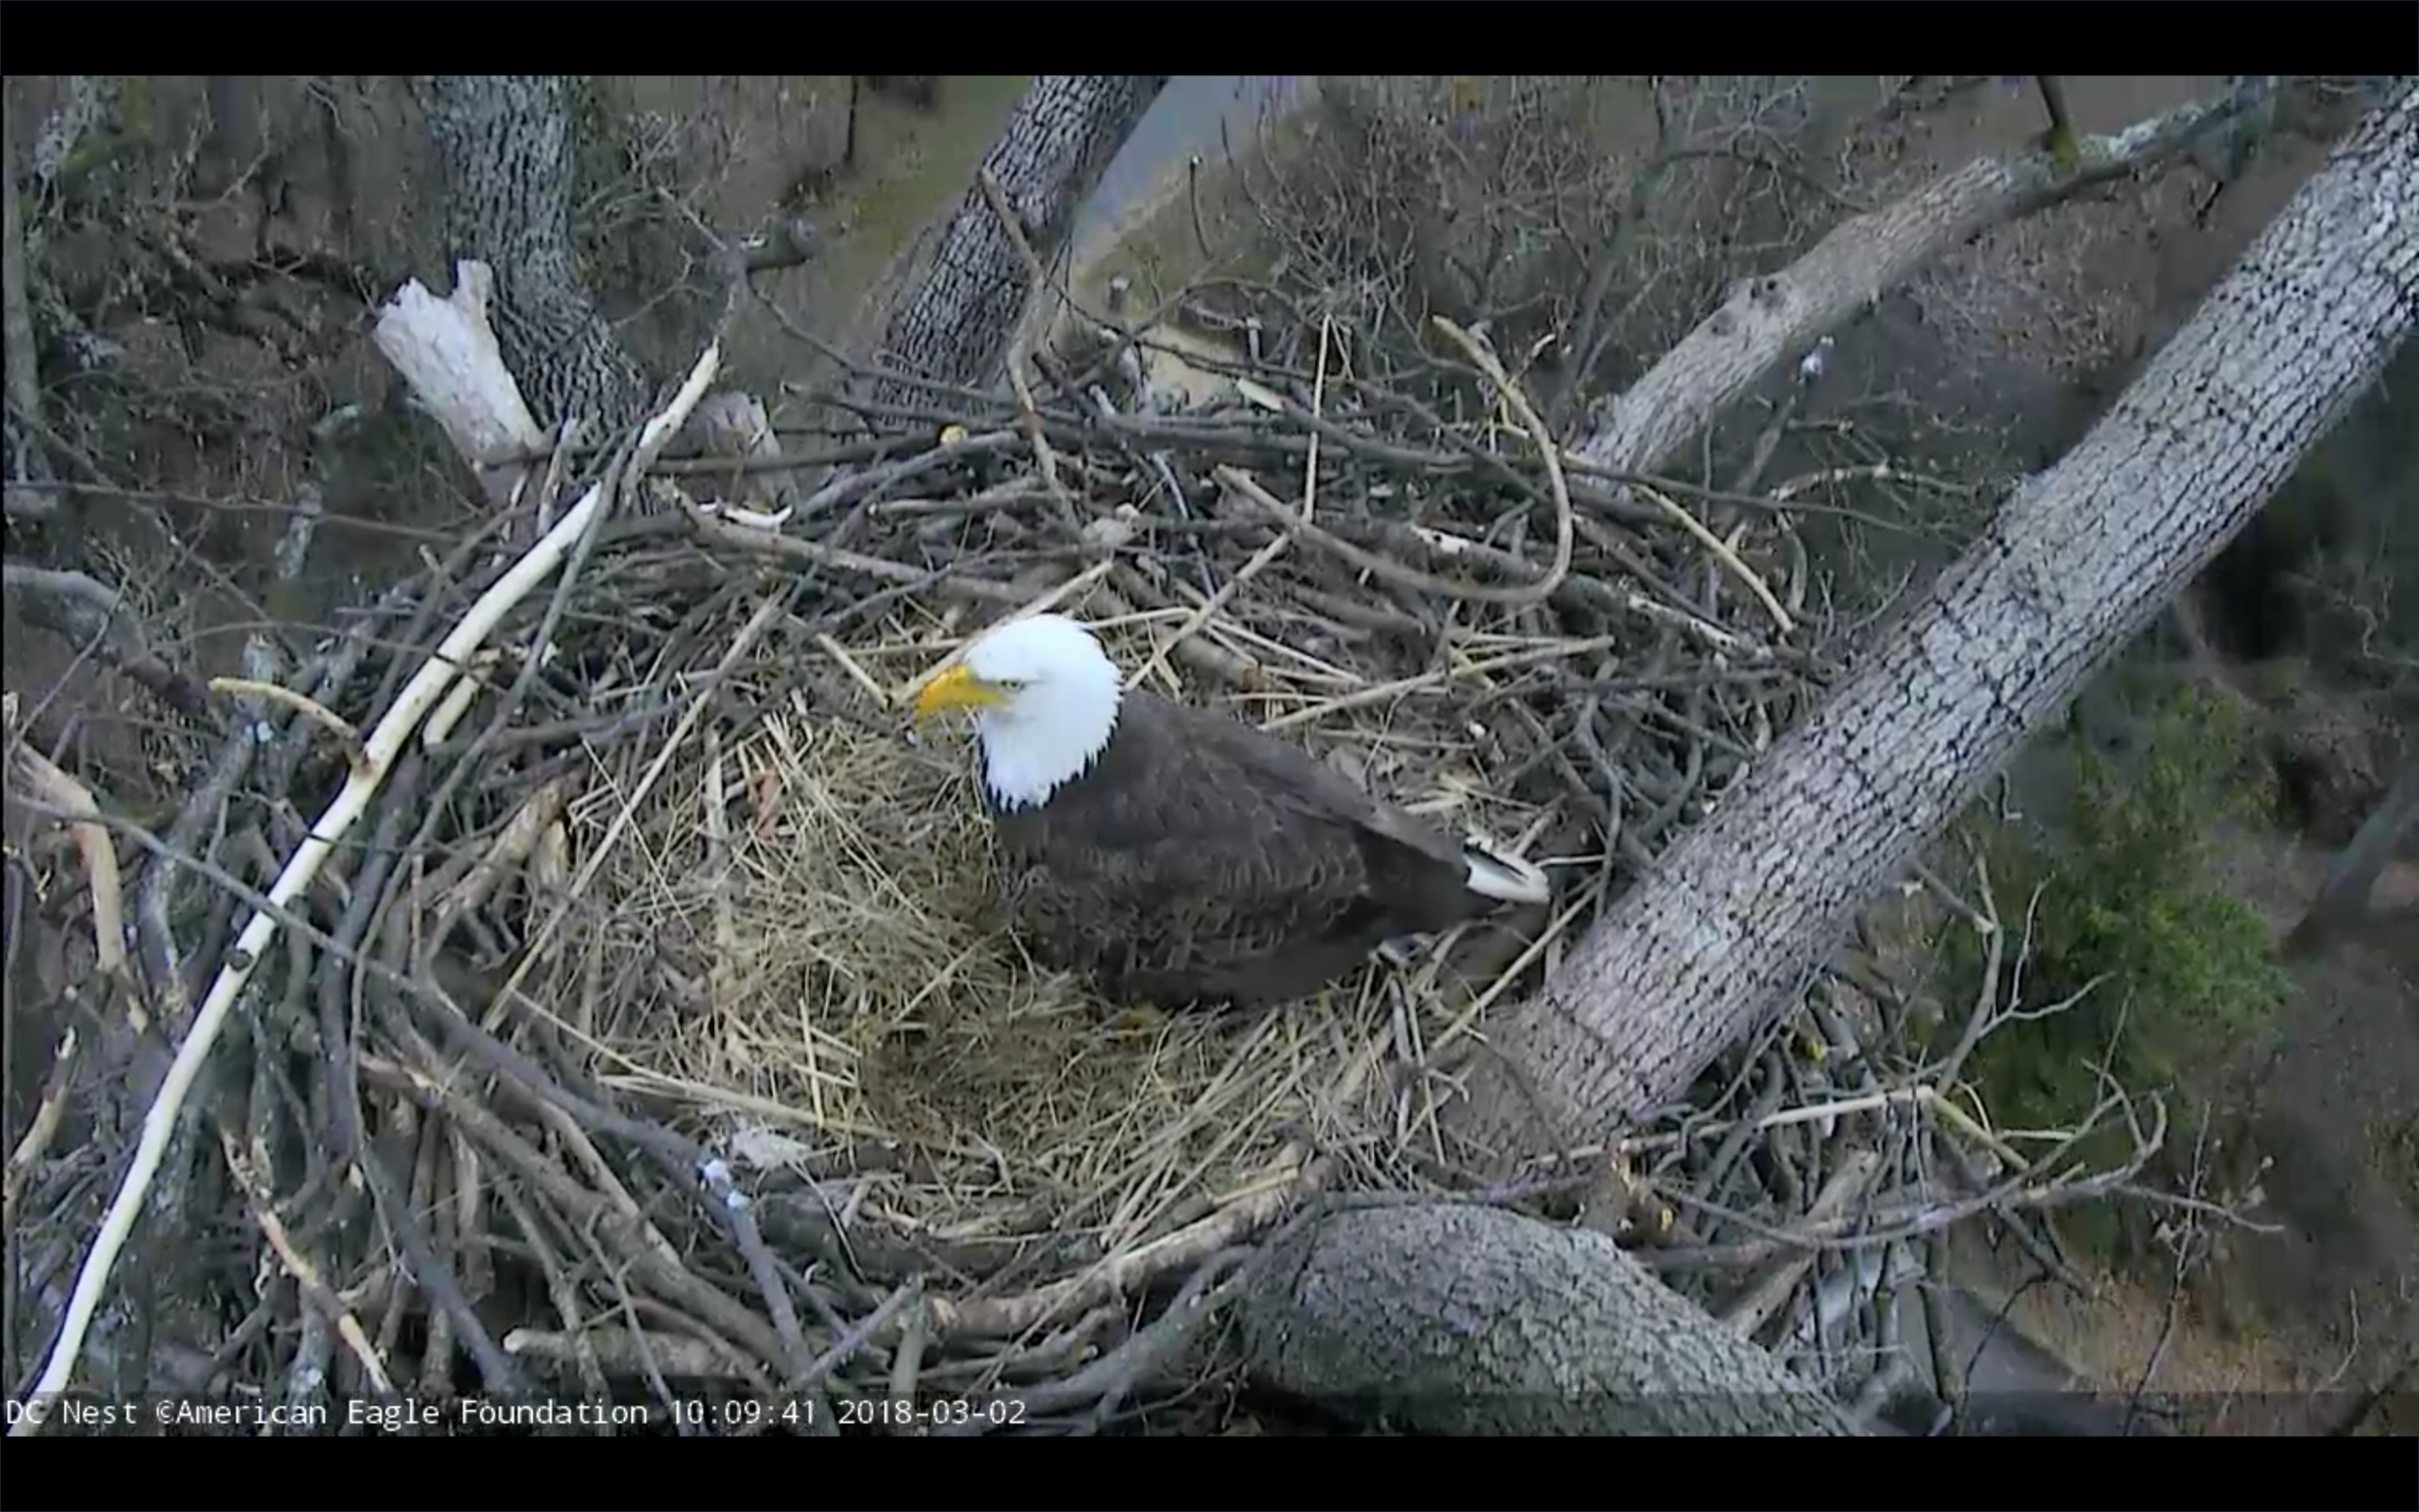 ©2018 American Eagle Foundation, EAGLES.ORG. These live feeds are the intellectual property of the AEF, and we kindly request that you do not attempt to embed or live stream these feeds on your website, blog, app, etc., or attempt to monetize screen shots or video captures. Thank you for your cooperation!